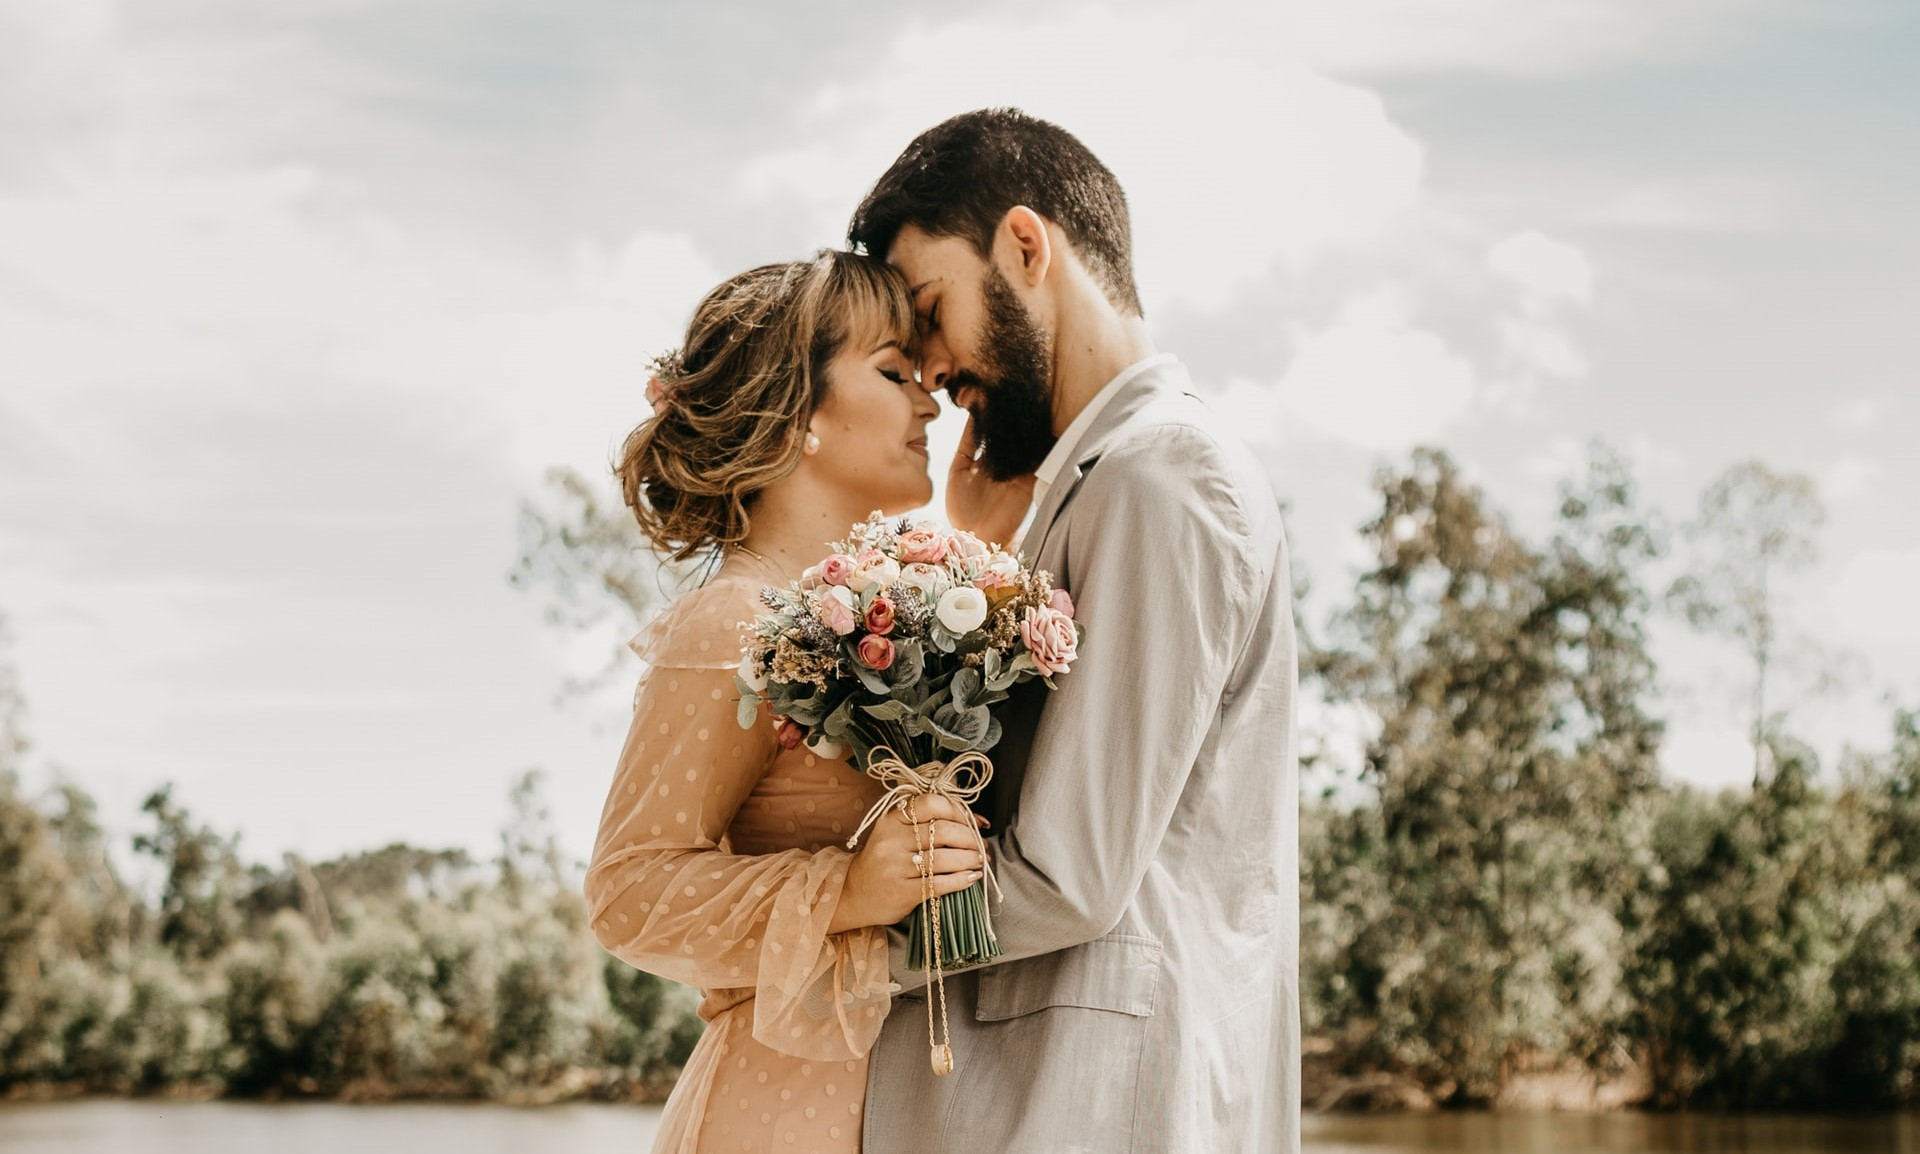 How to Communicate Love to Your Spouse